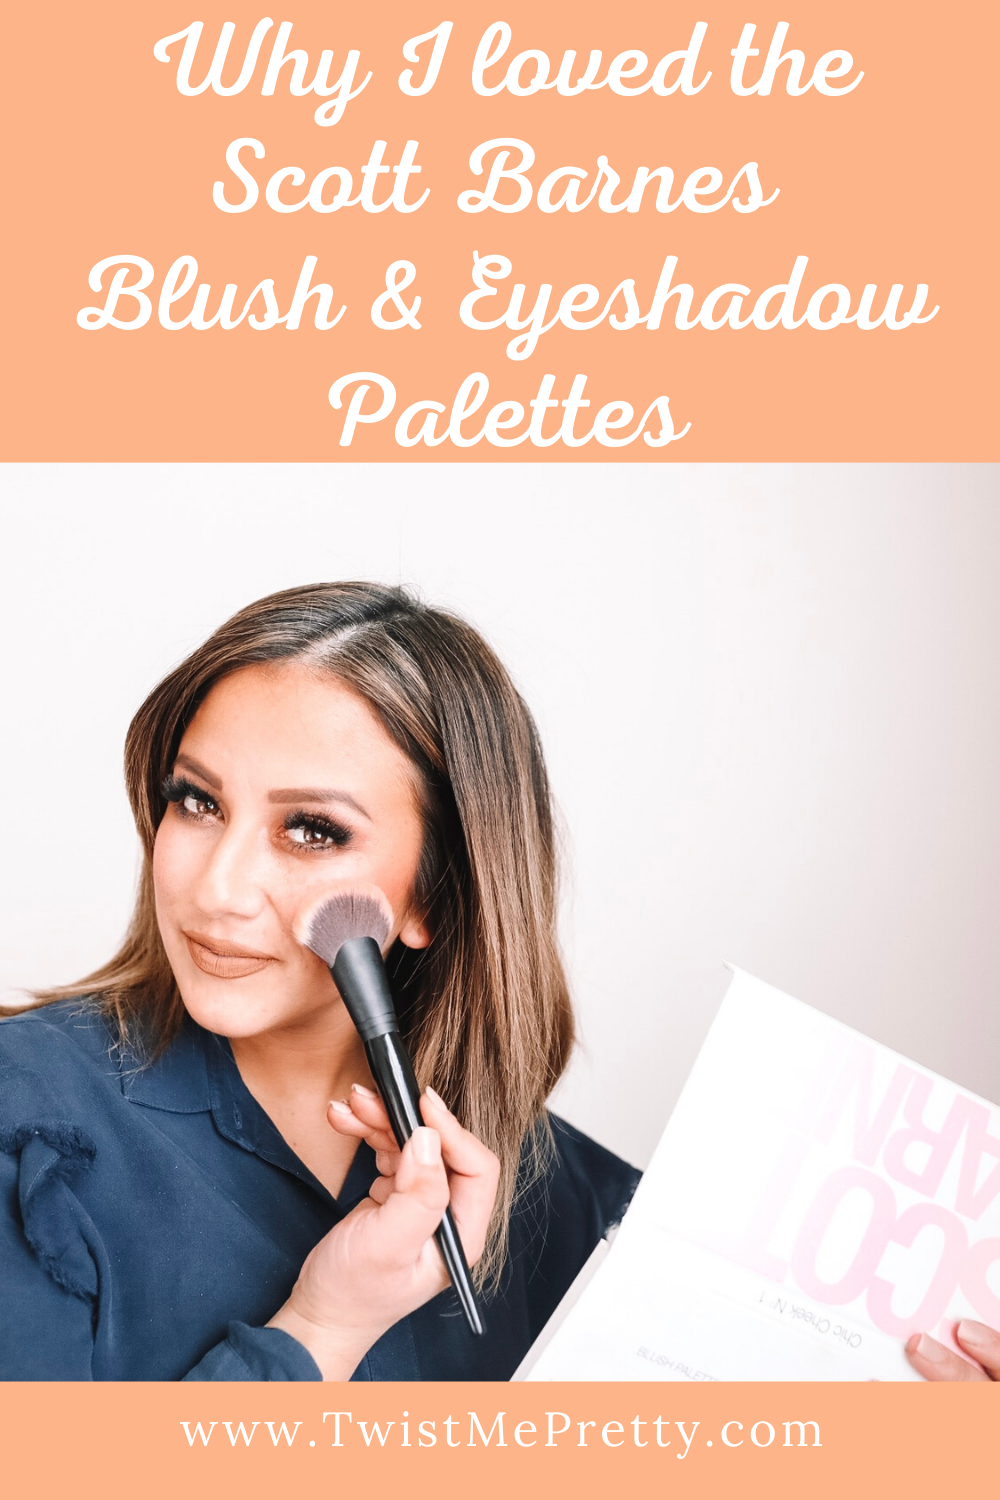 Why I loved the Scott Barnes Blush & Eyeshadow Palettes. www.TwistMePretty.com